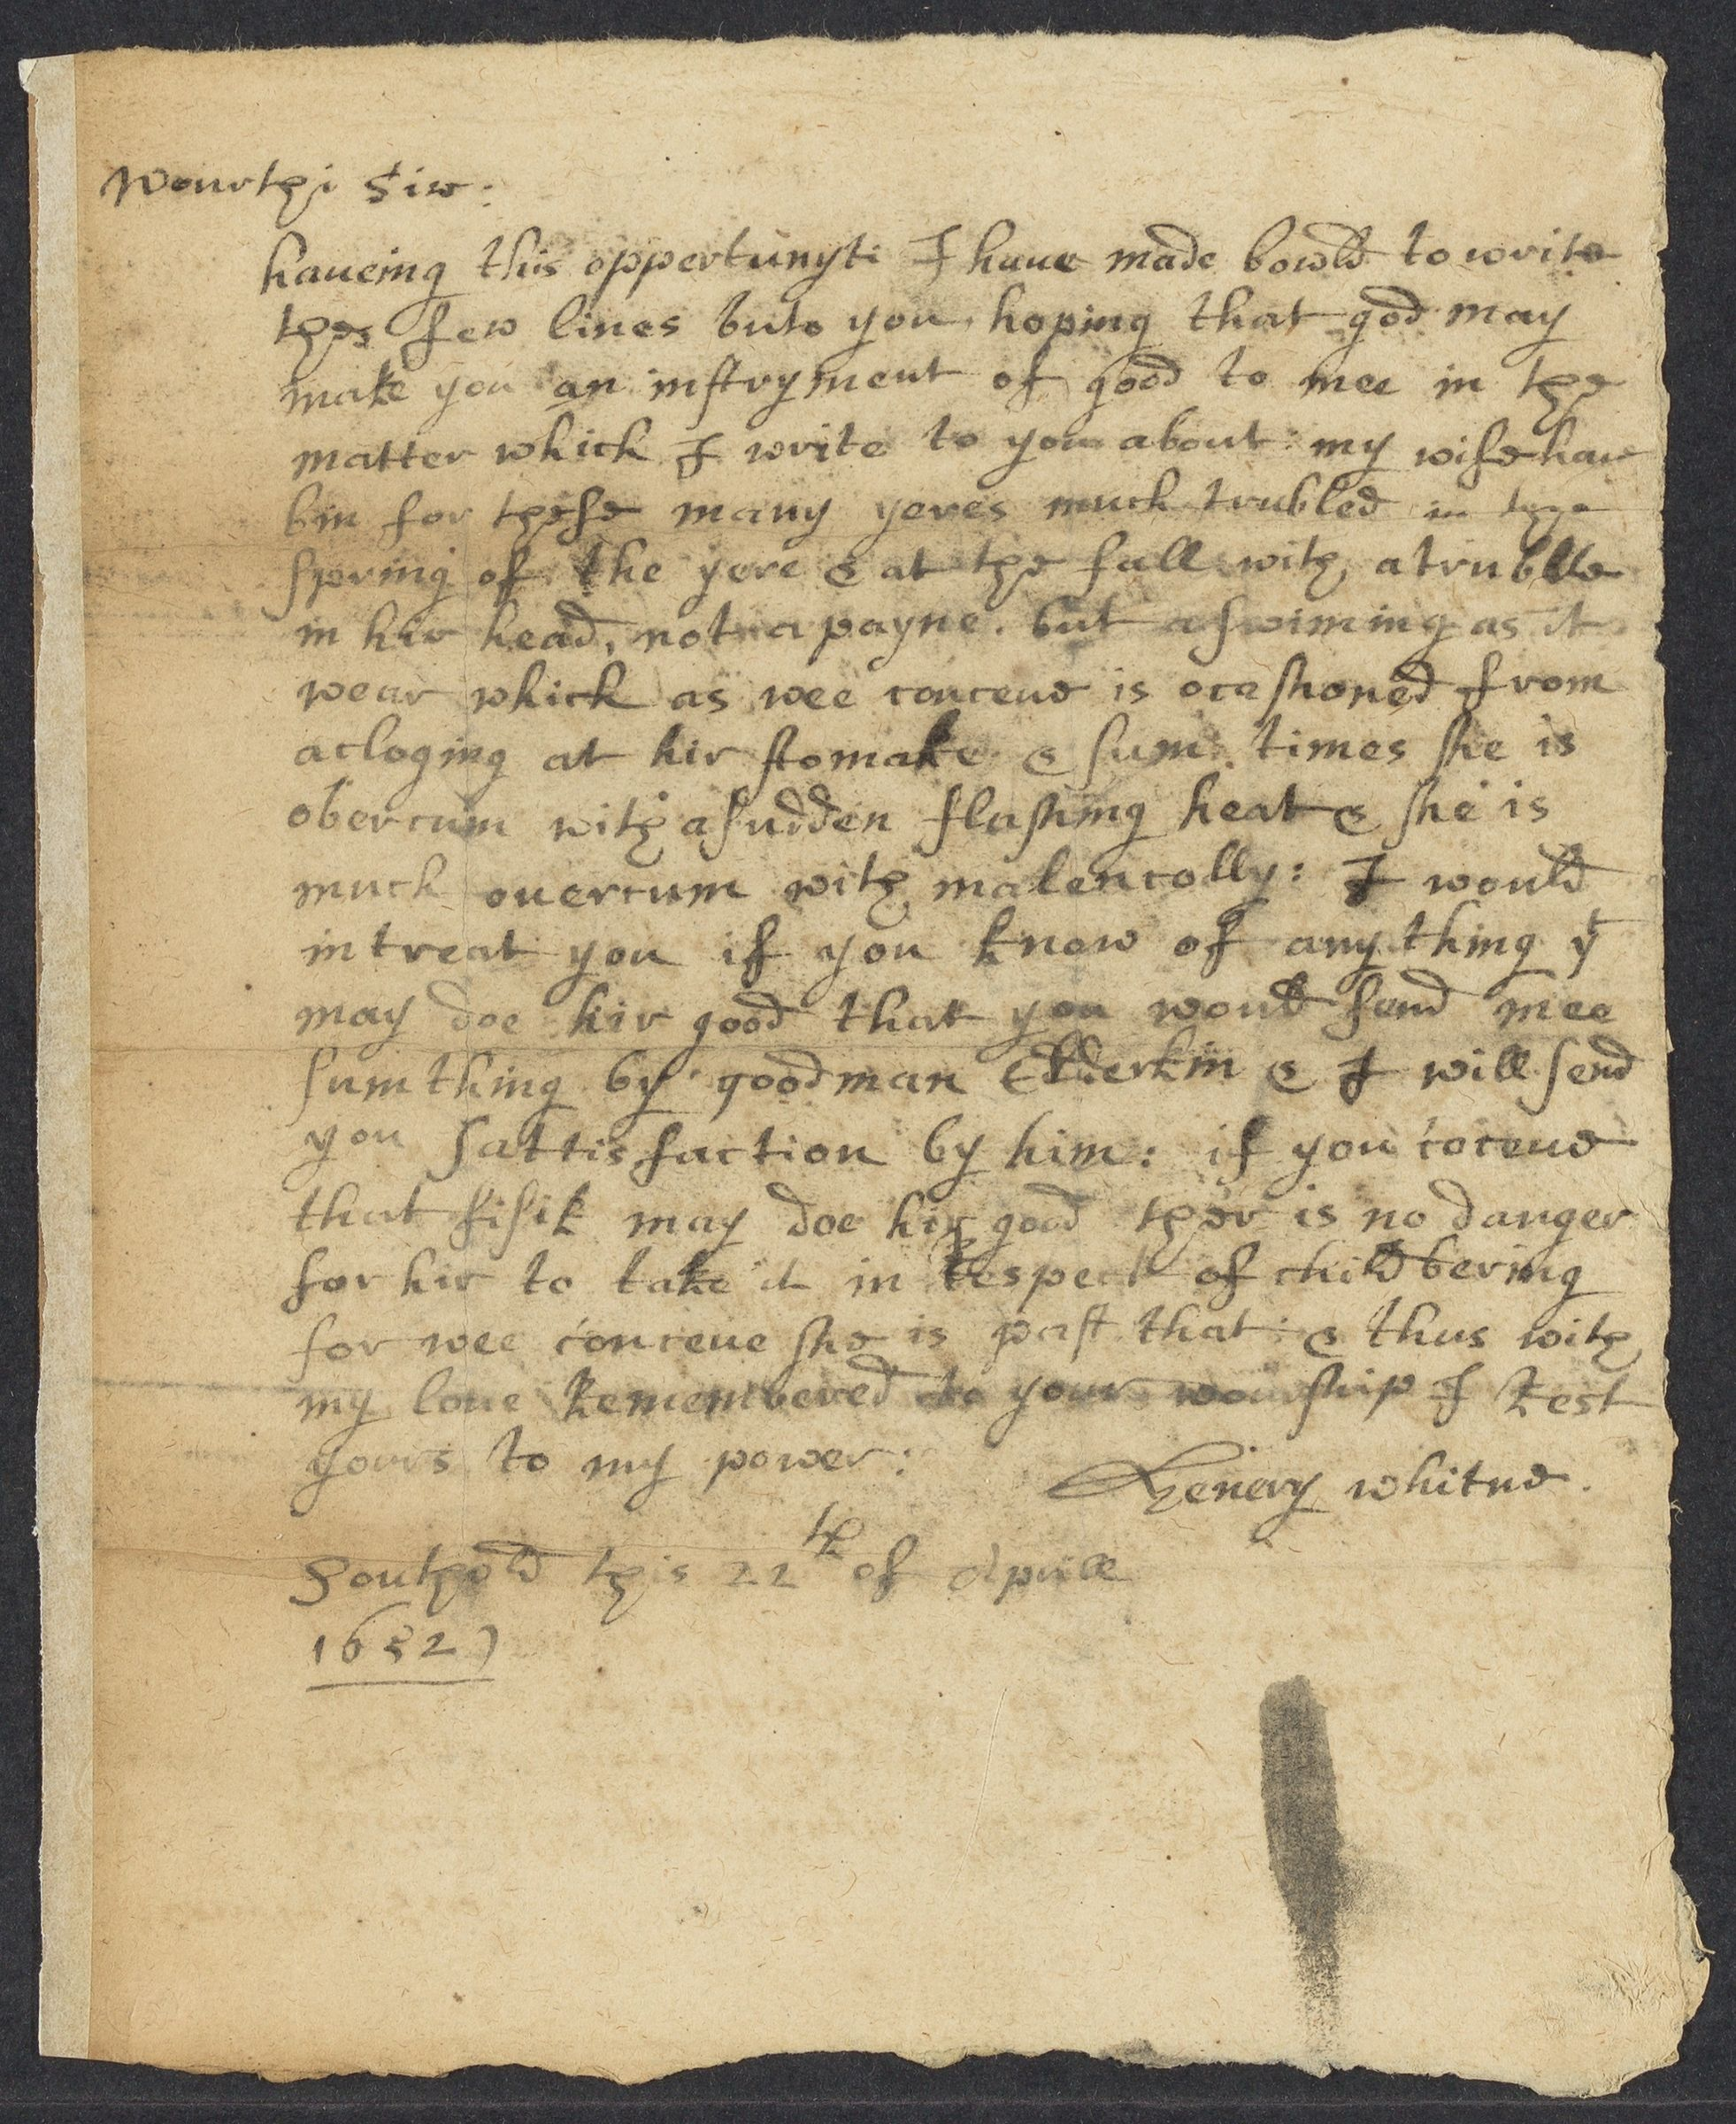 Whitne, Henery, autographed letter signed to John Winthrop; Southold, 1 side (2 pages), 1652 April 22